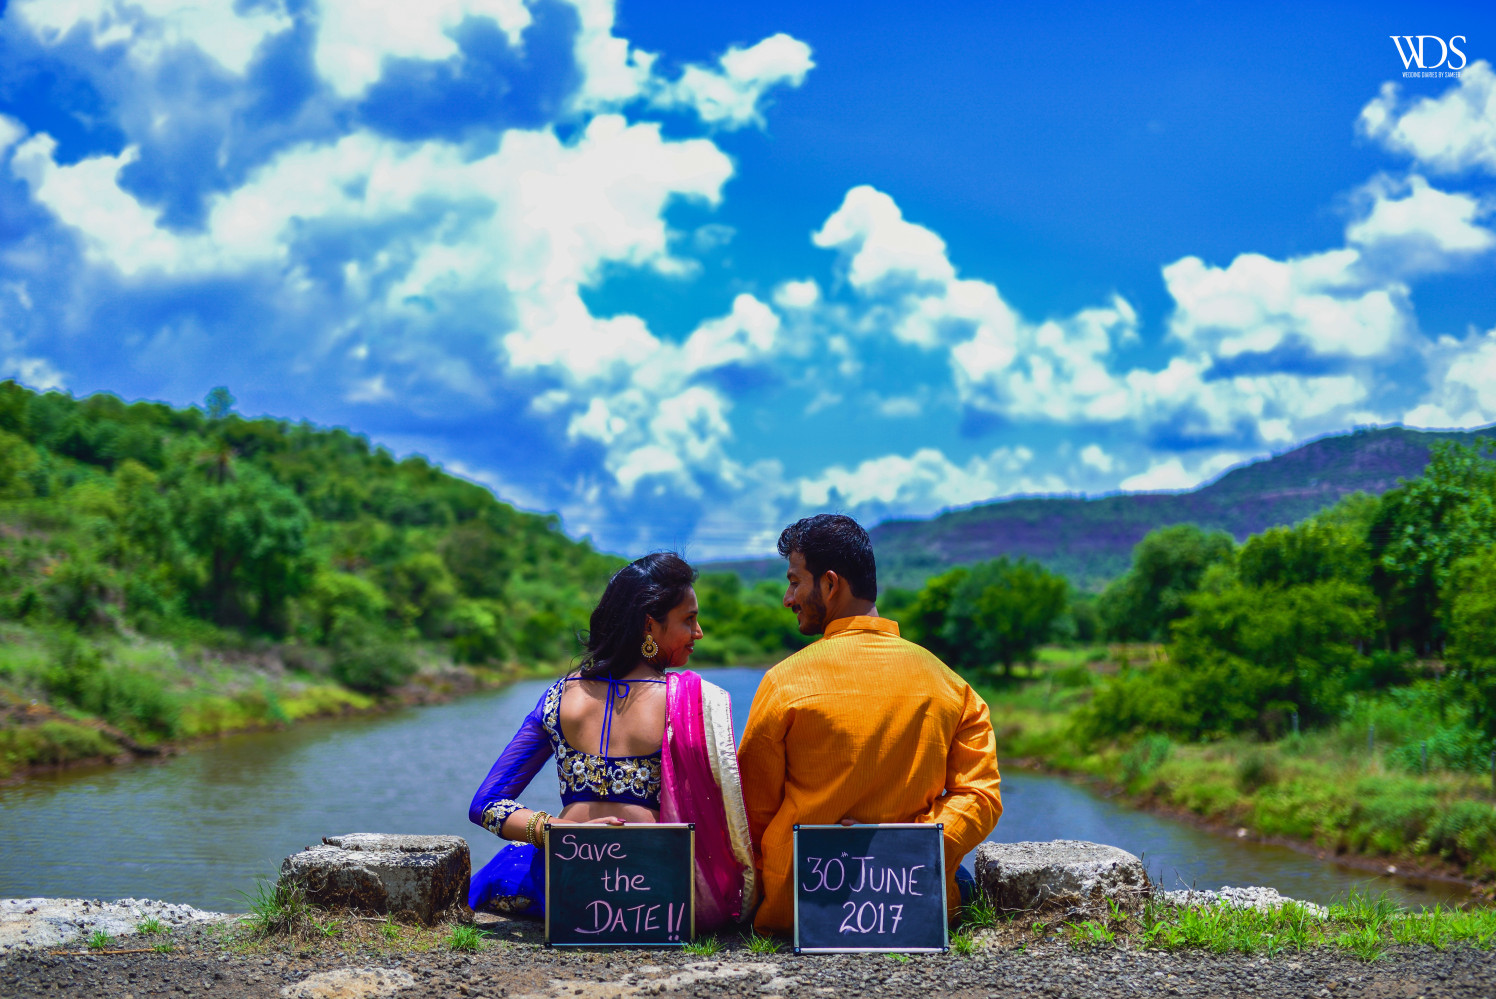 The Save The Date Themed Pre-Wedding Shoot In An Aesthetic Location Of Between HIlls And Lake by Sameer Panchpor Wedding-photography | Weddings Photos & Ideas